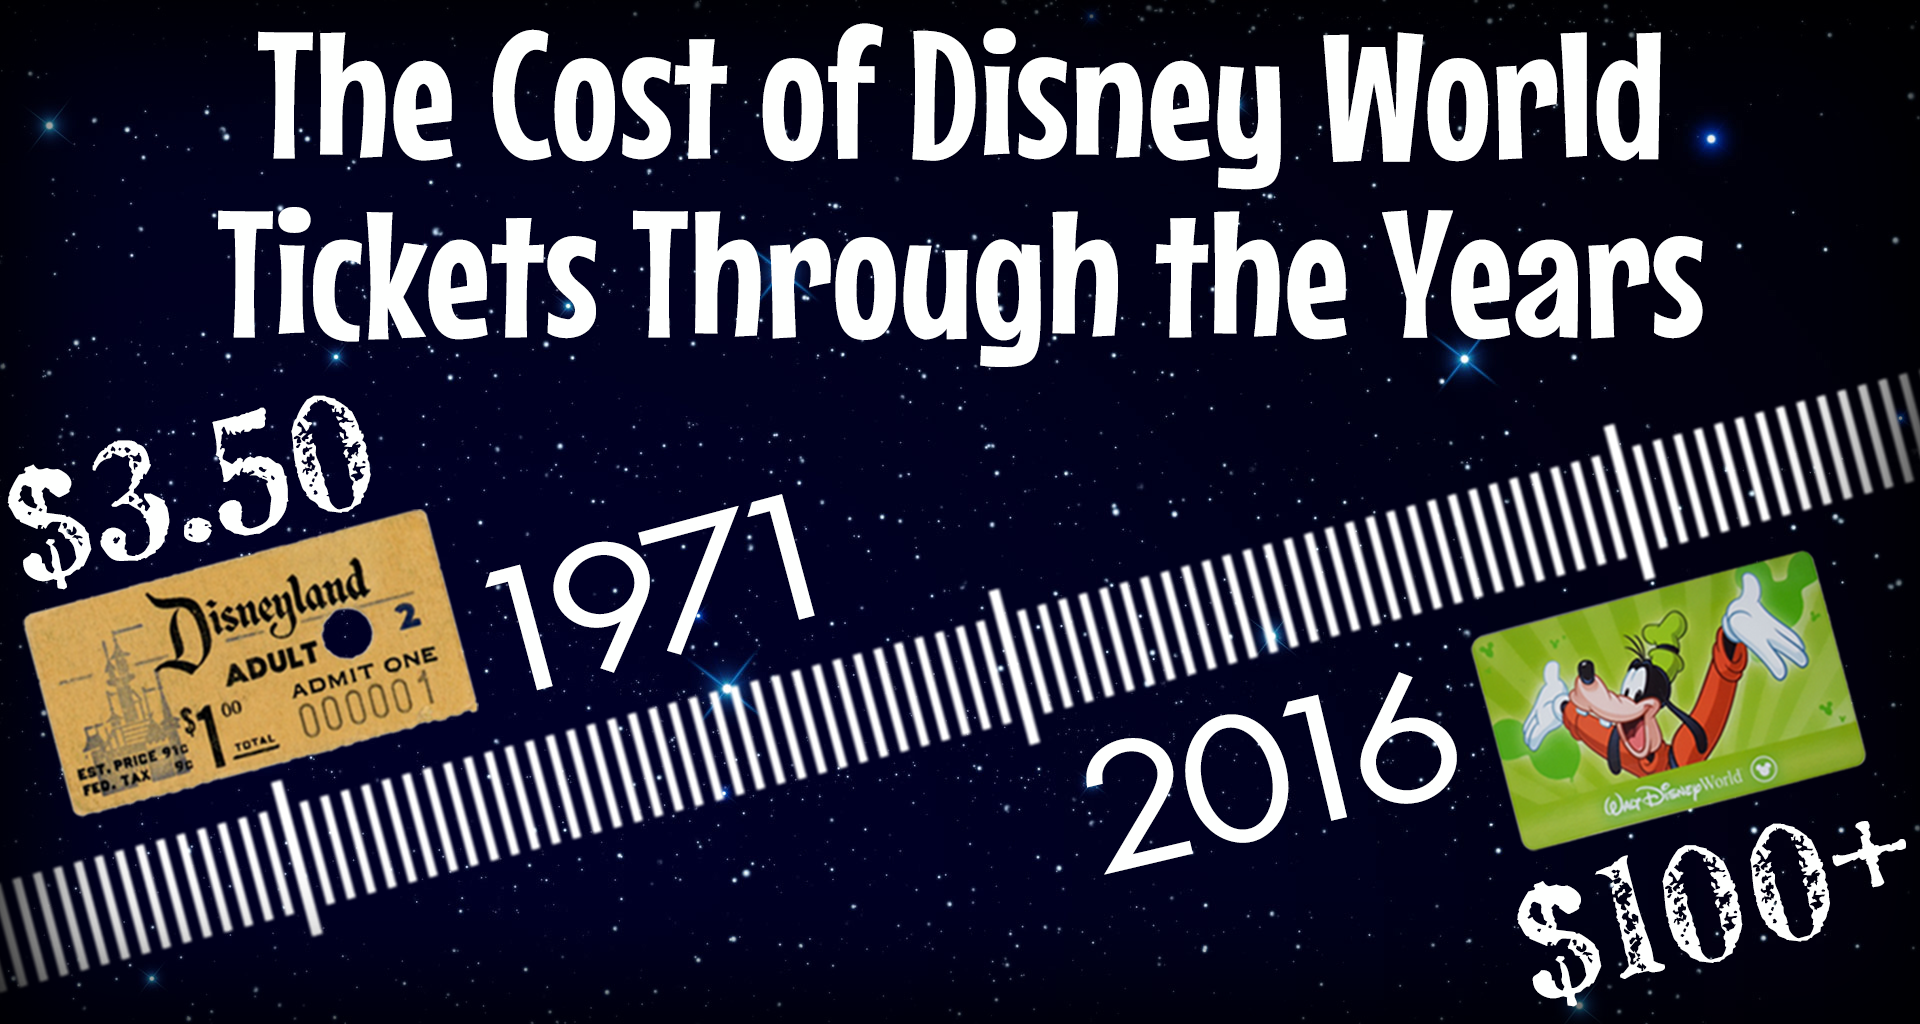 The Cost of Disney World Tickets Through Years Youtube